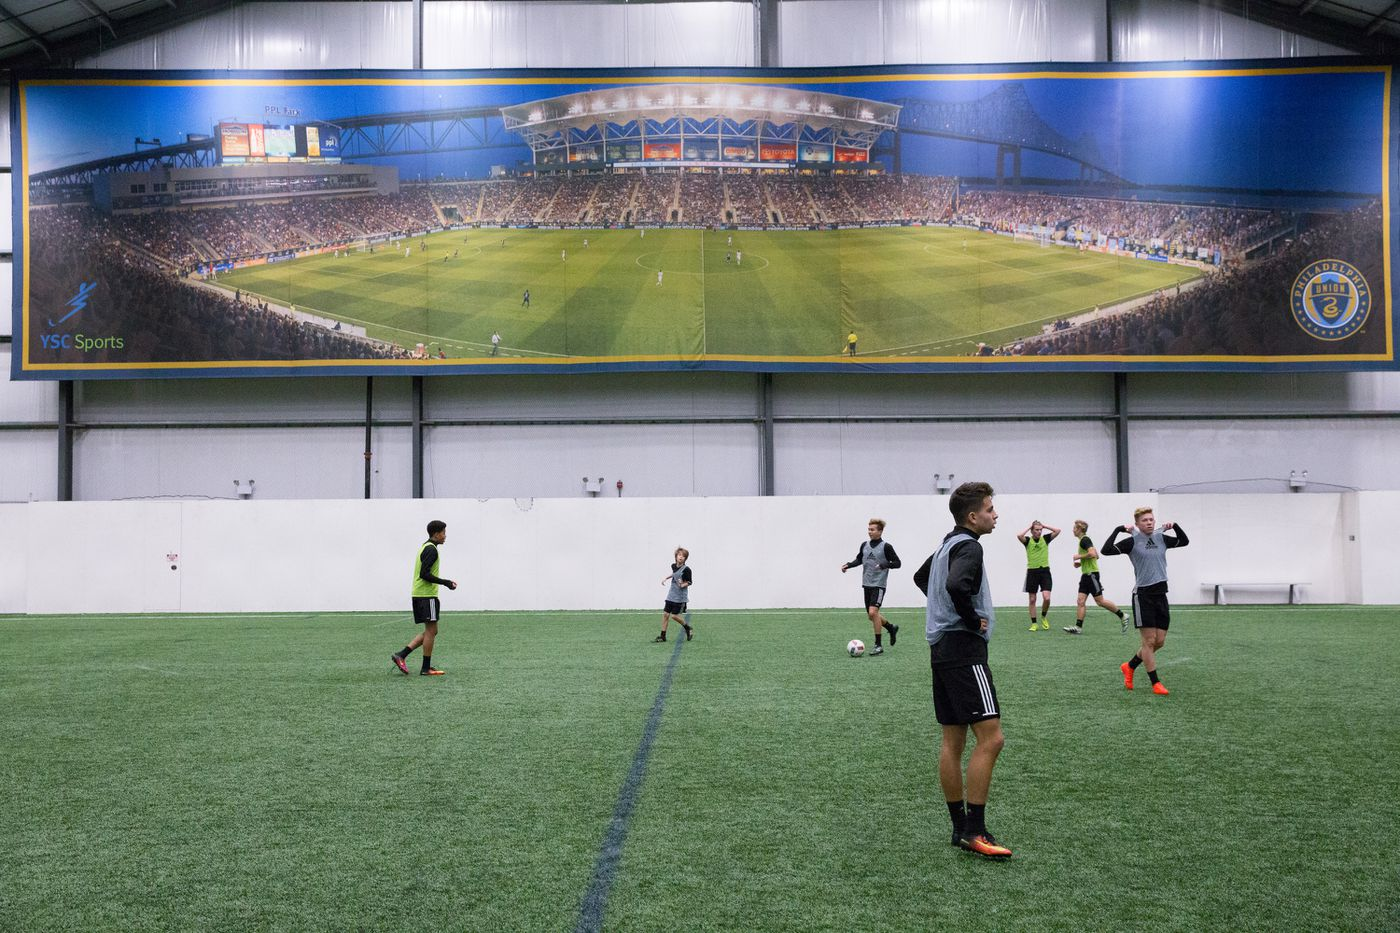 Union to play in International Champions Cup youth tournament with MLS teams, Liverpool, Chelsea, Dortmund